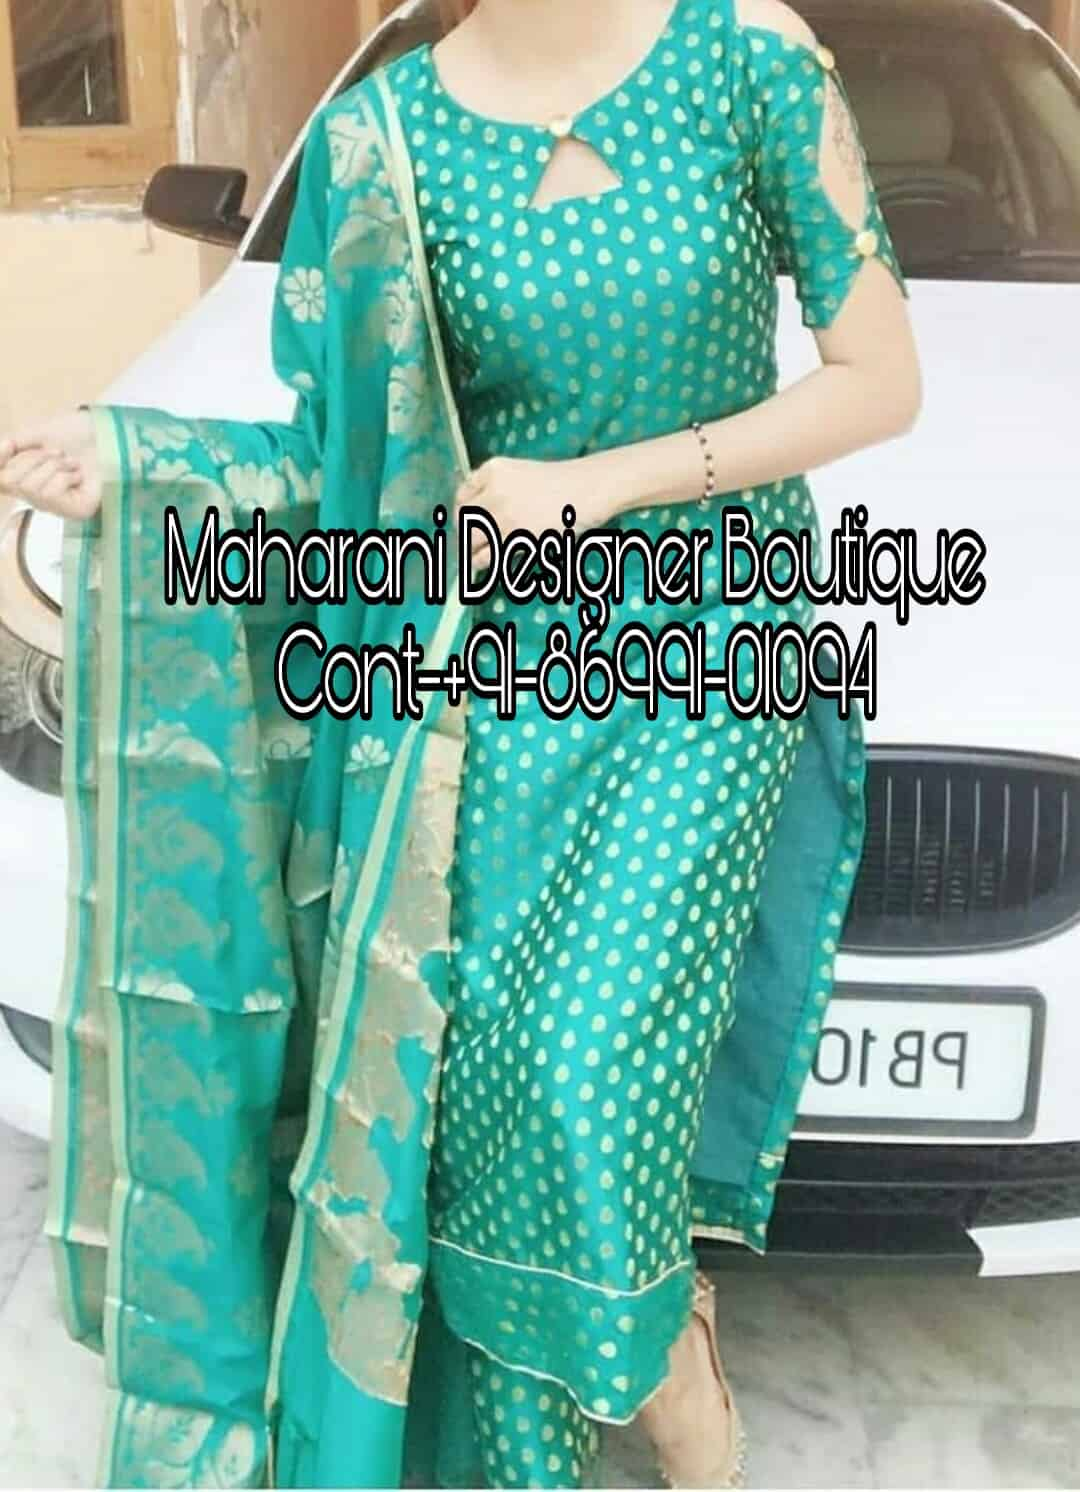 Mdb 11440 Trouser Suits For Female Wedding